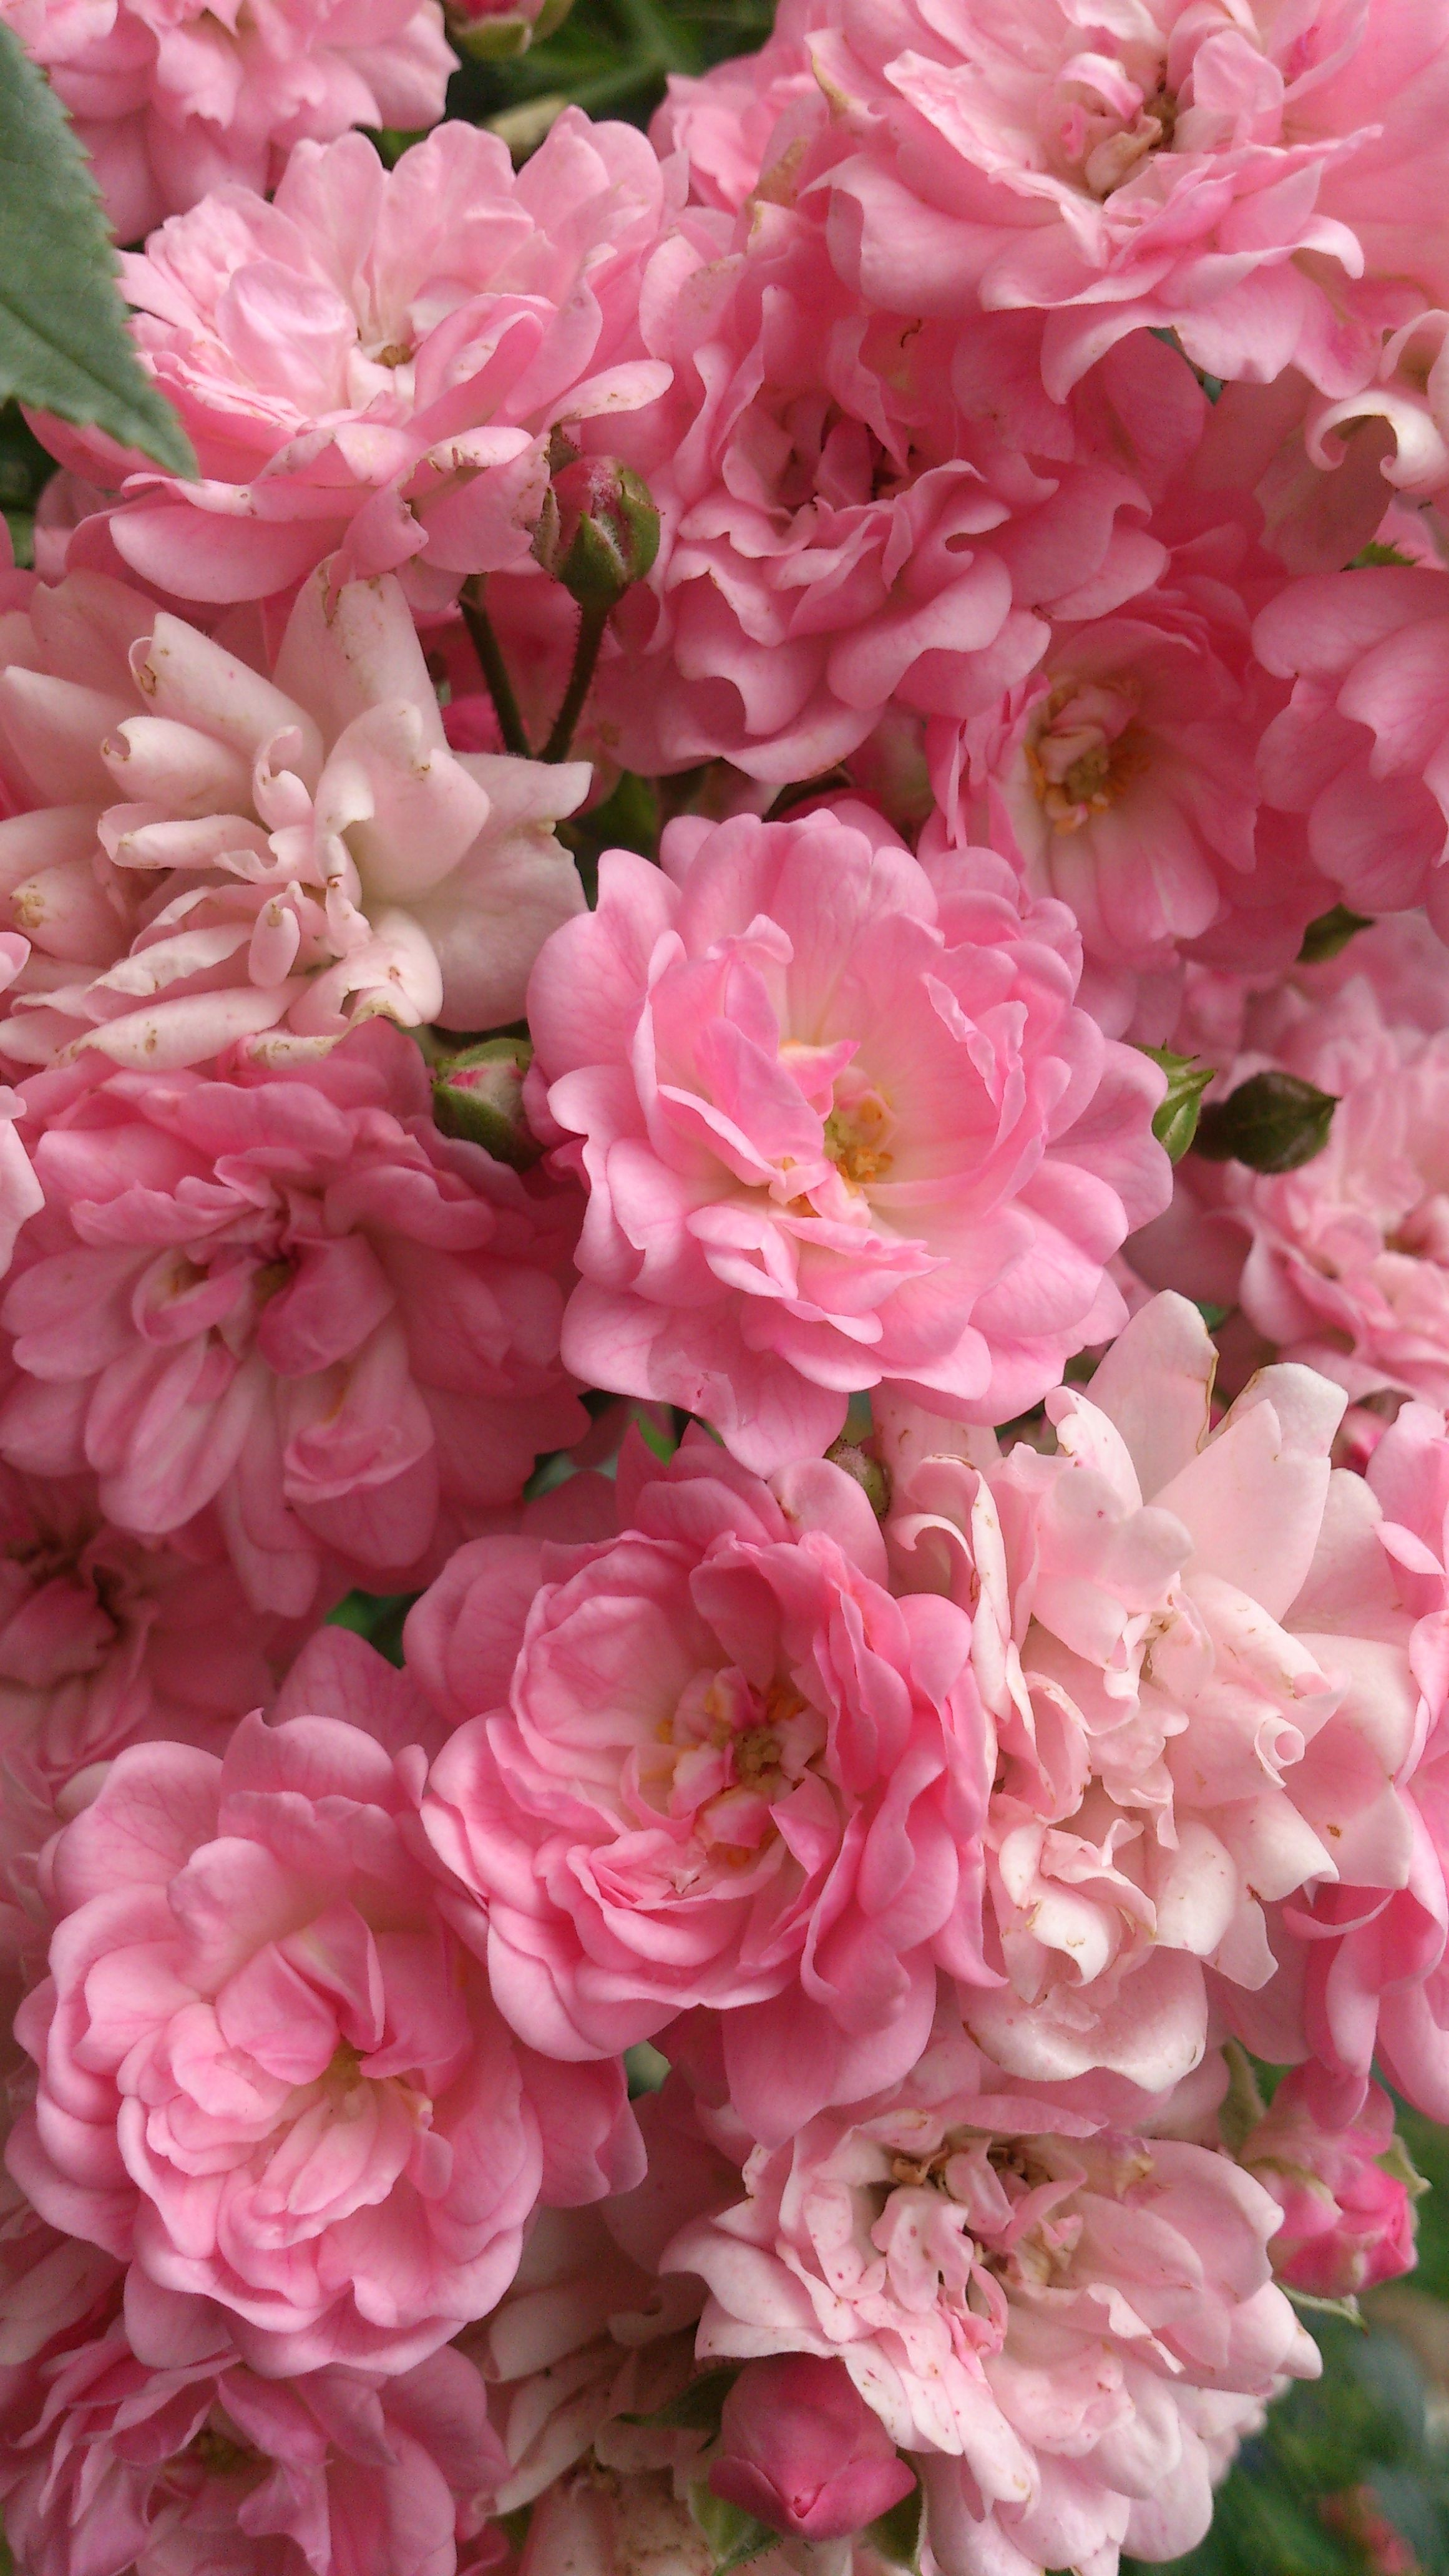 Roses in bloom | Garden services, Flowers